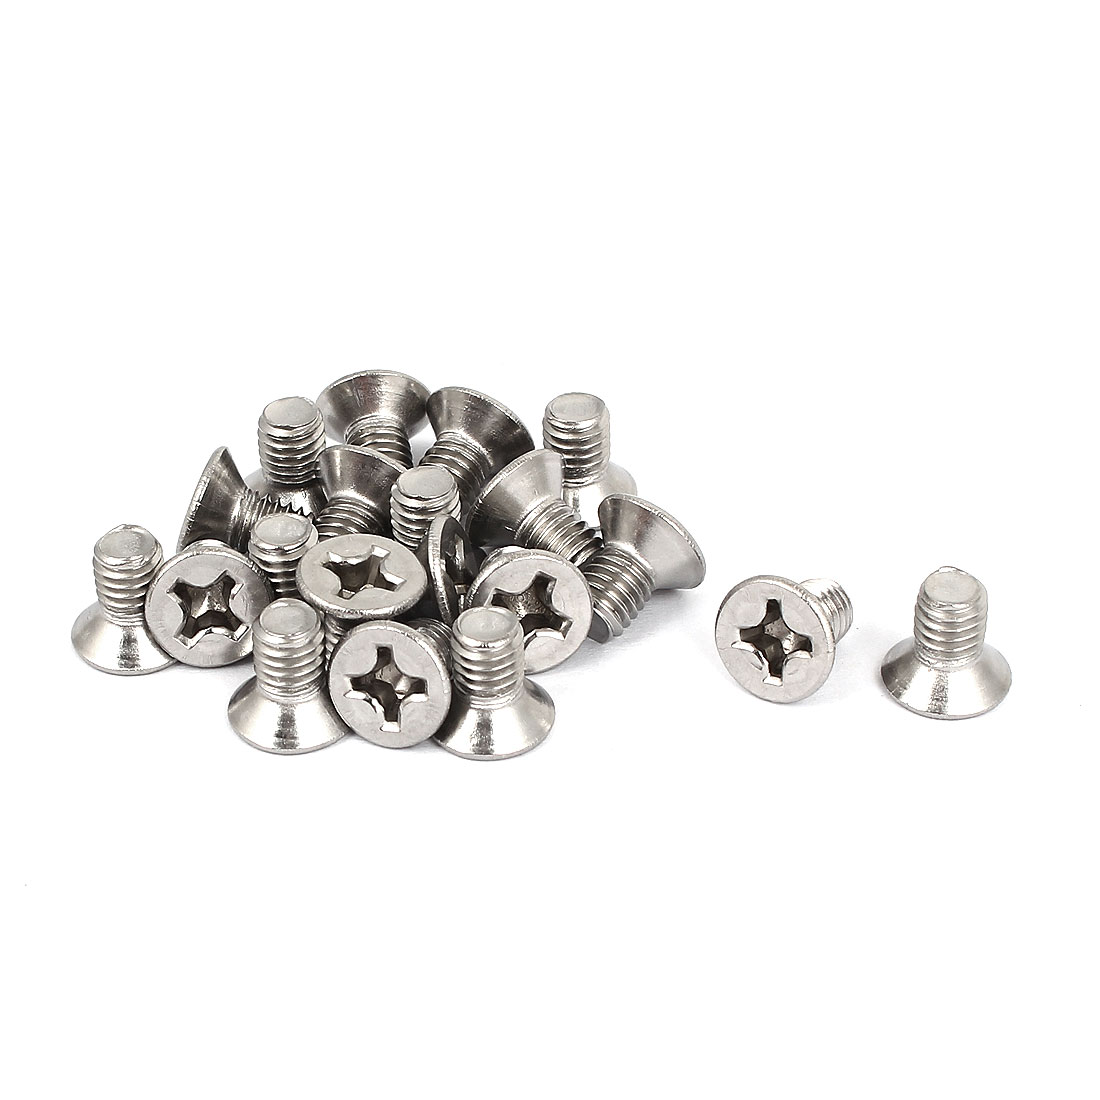 M6x10mm 304 Stainless Steel Phillips Flat Countersunk Head Screws 20pcs